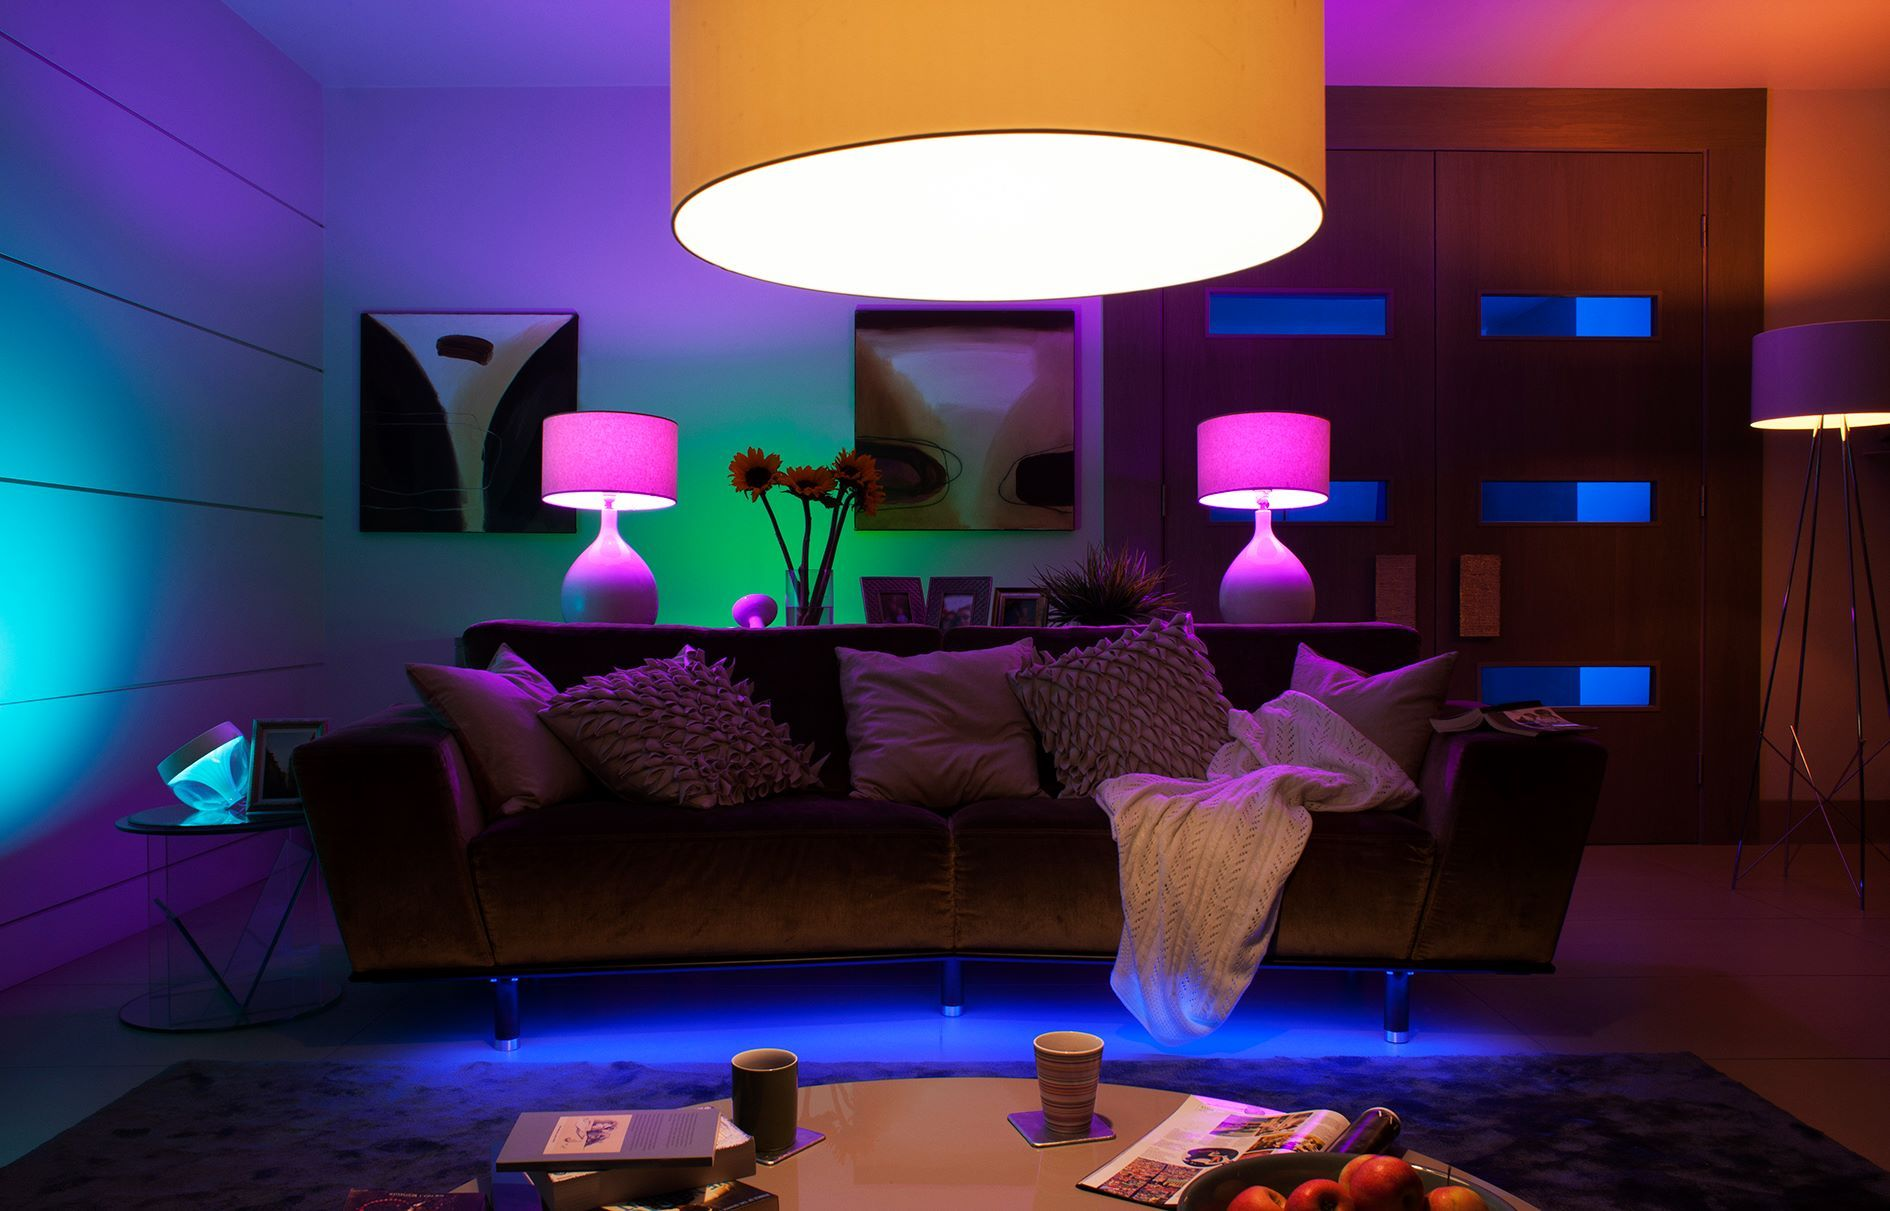 Philips Hue Bulbs allow a wide range of lighting colours to be controlled in your home.